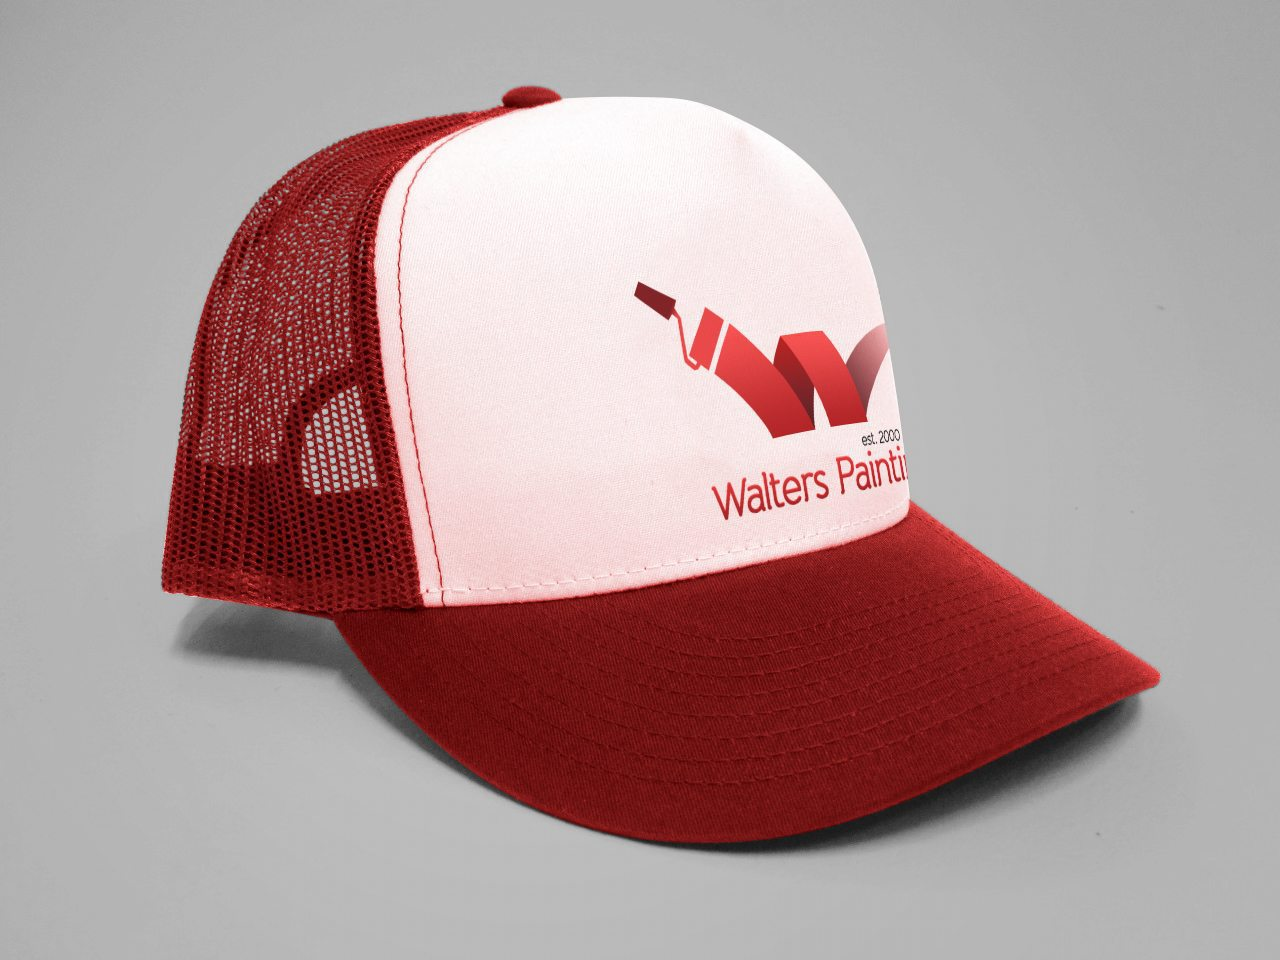 Walters Painting Branded Basecall Cap Design